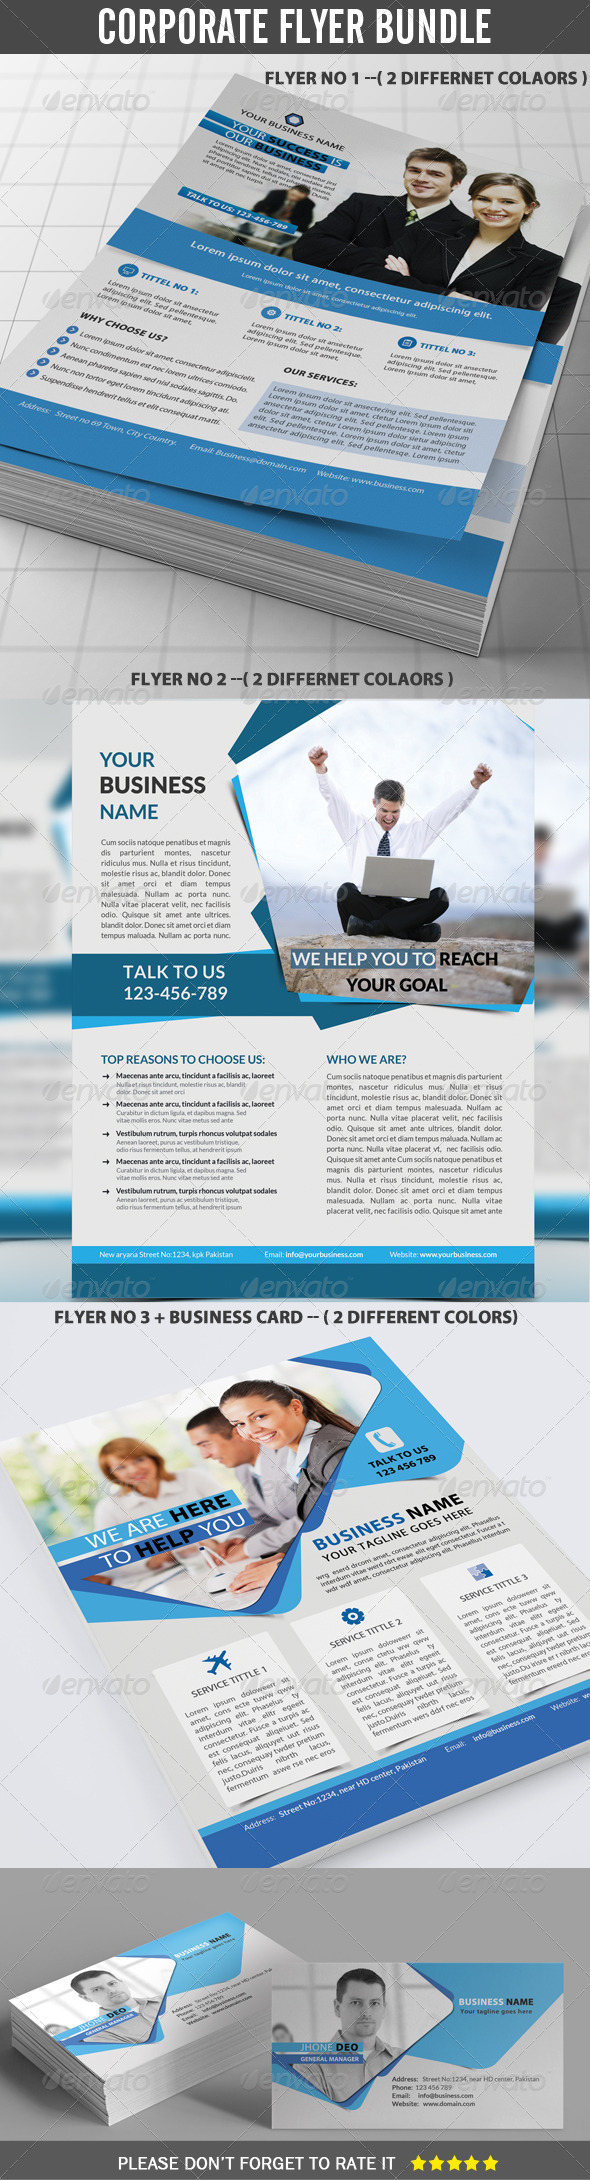 GraphicRiver Corporate Flyer Bundle 8216857